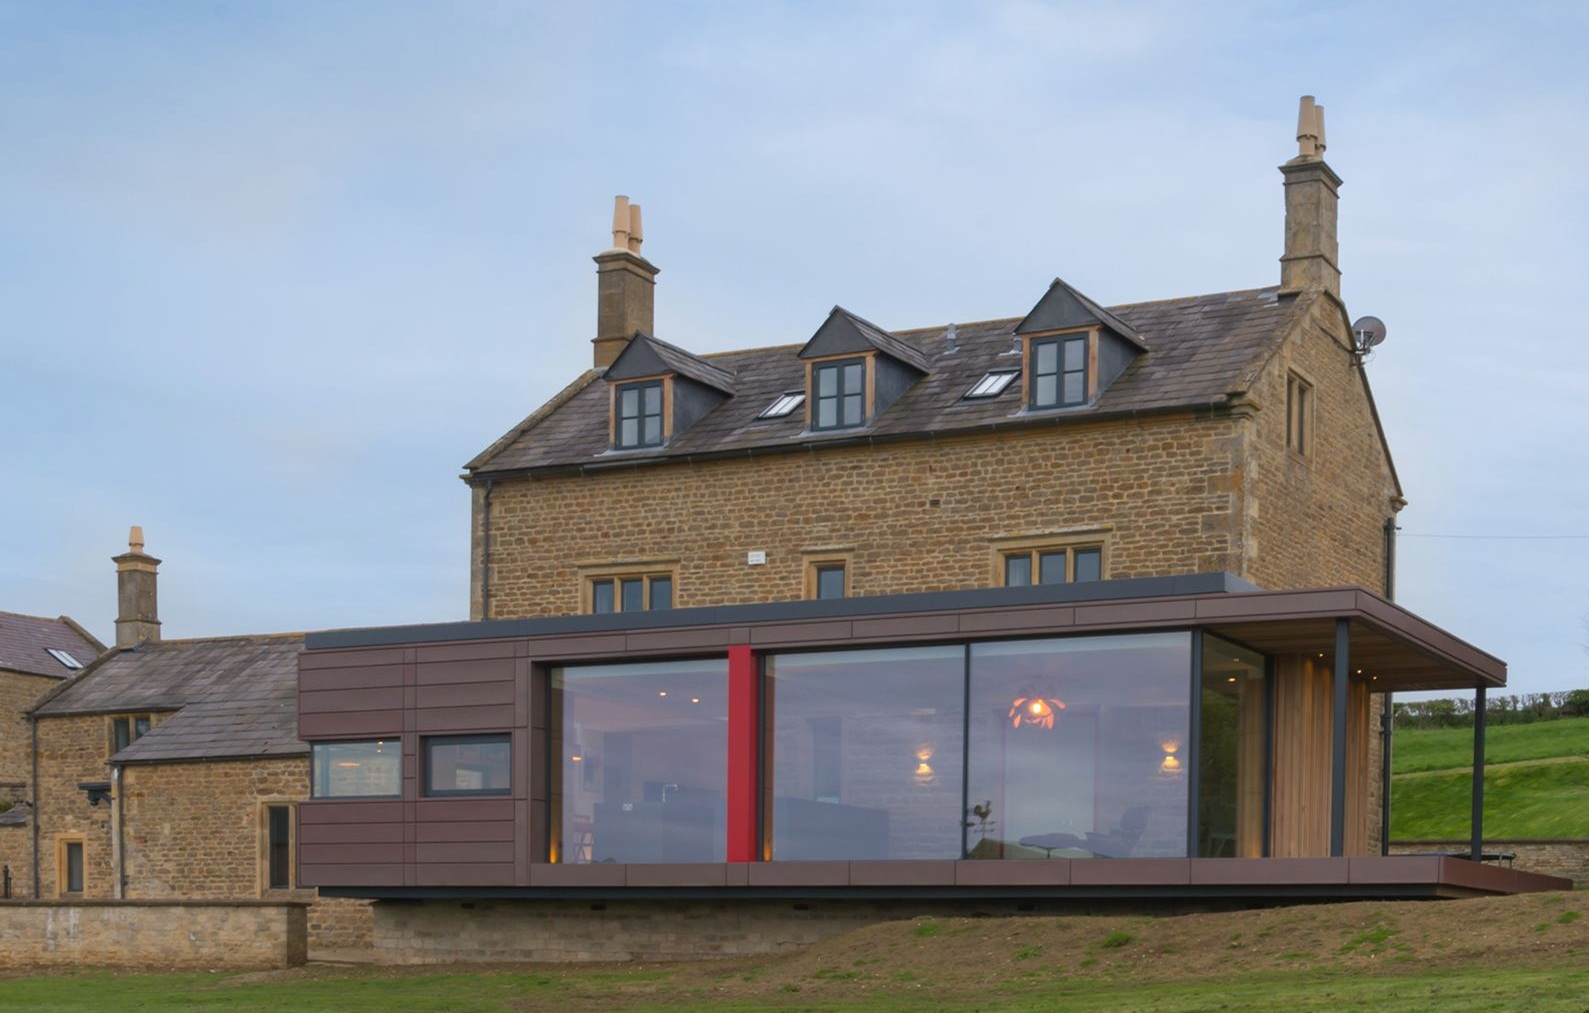 WARWICKSHIRE FARM HOUSE - This large single story extension also uses the red pigmento zinc. Sitting against the original listed building the coloured zinc interlocking panels allow for an ultra modern look.